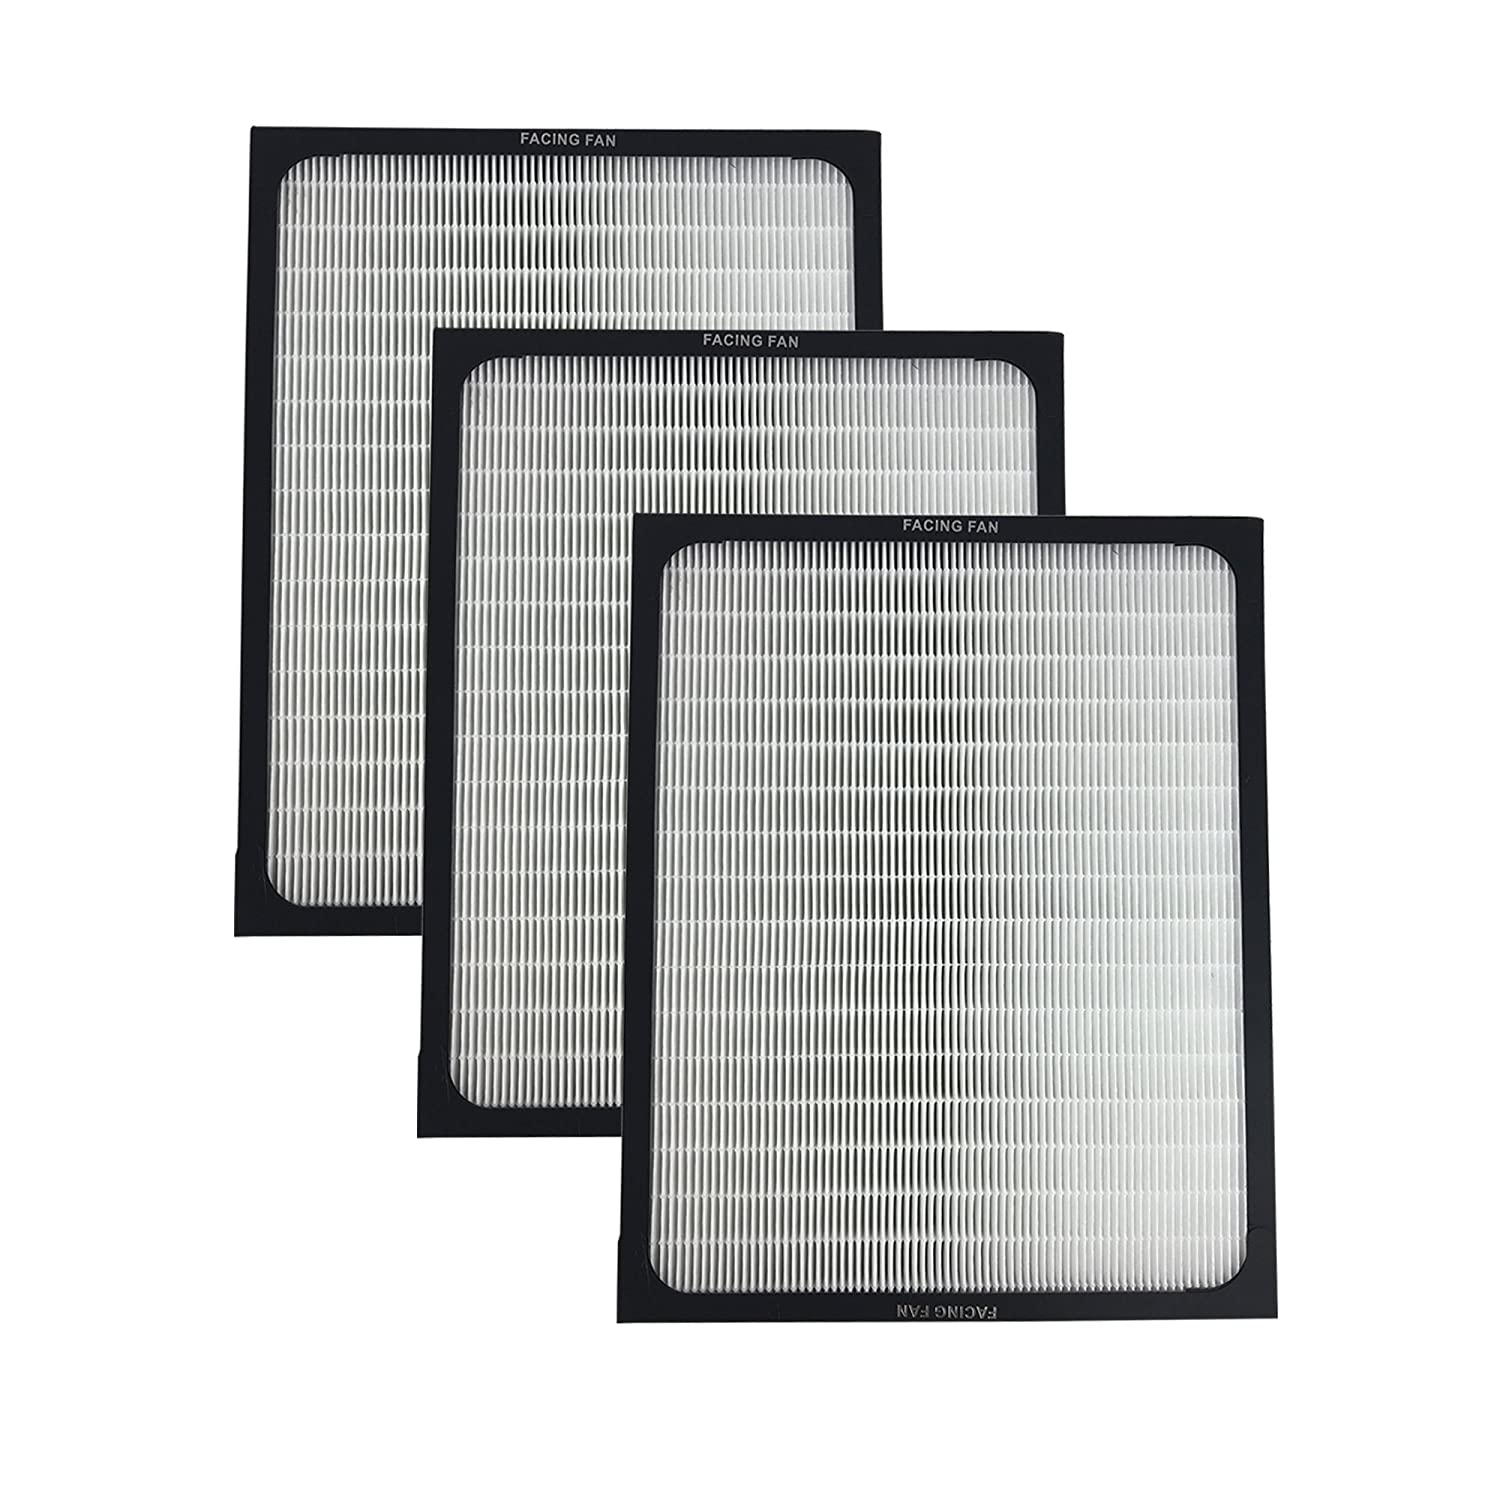 3 Air Purifier Filters fit ALL Blueair 200 & 300 Series Models 201, 210B, 203, 250E,200PF, 201PF, Designed & Engineered by Crucial Air Crucial Vacuum